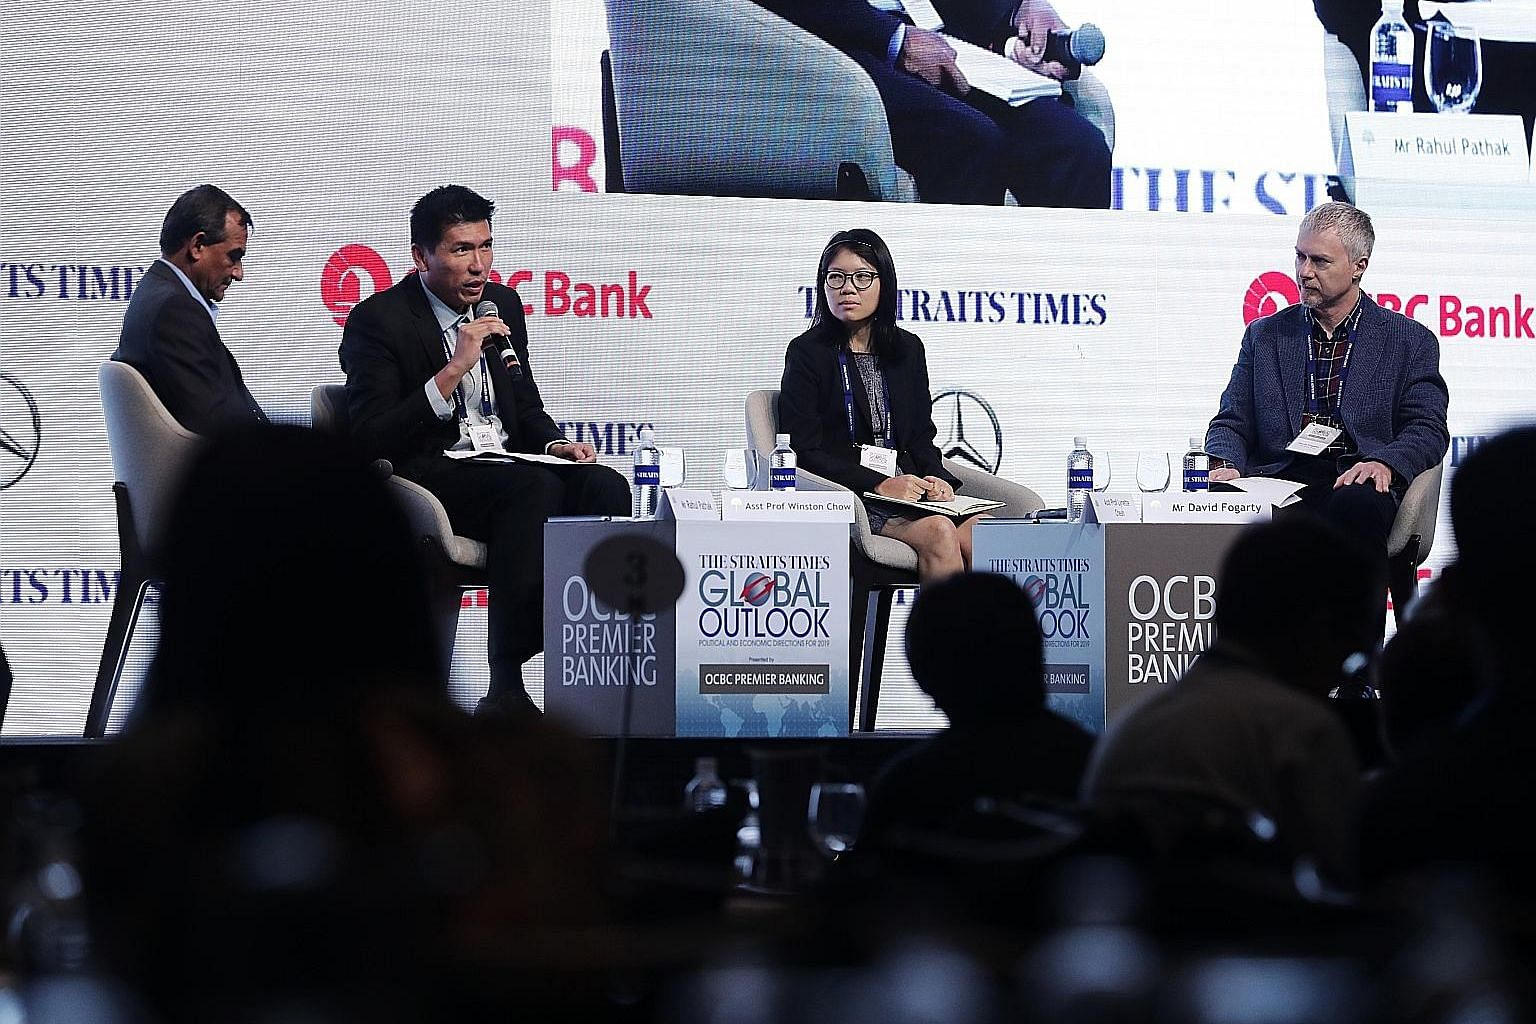 (From left) Moderator and ST associate editor Rahul Pathak, Assistant Professor Winston Chow of the National University of Singapore, Assistant Professor Lynette Cheah of the Singapore University of Technology and Design, and ST assistant foreign edi